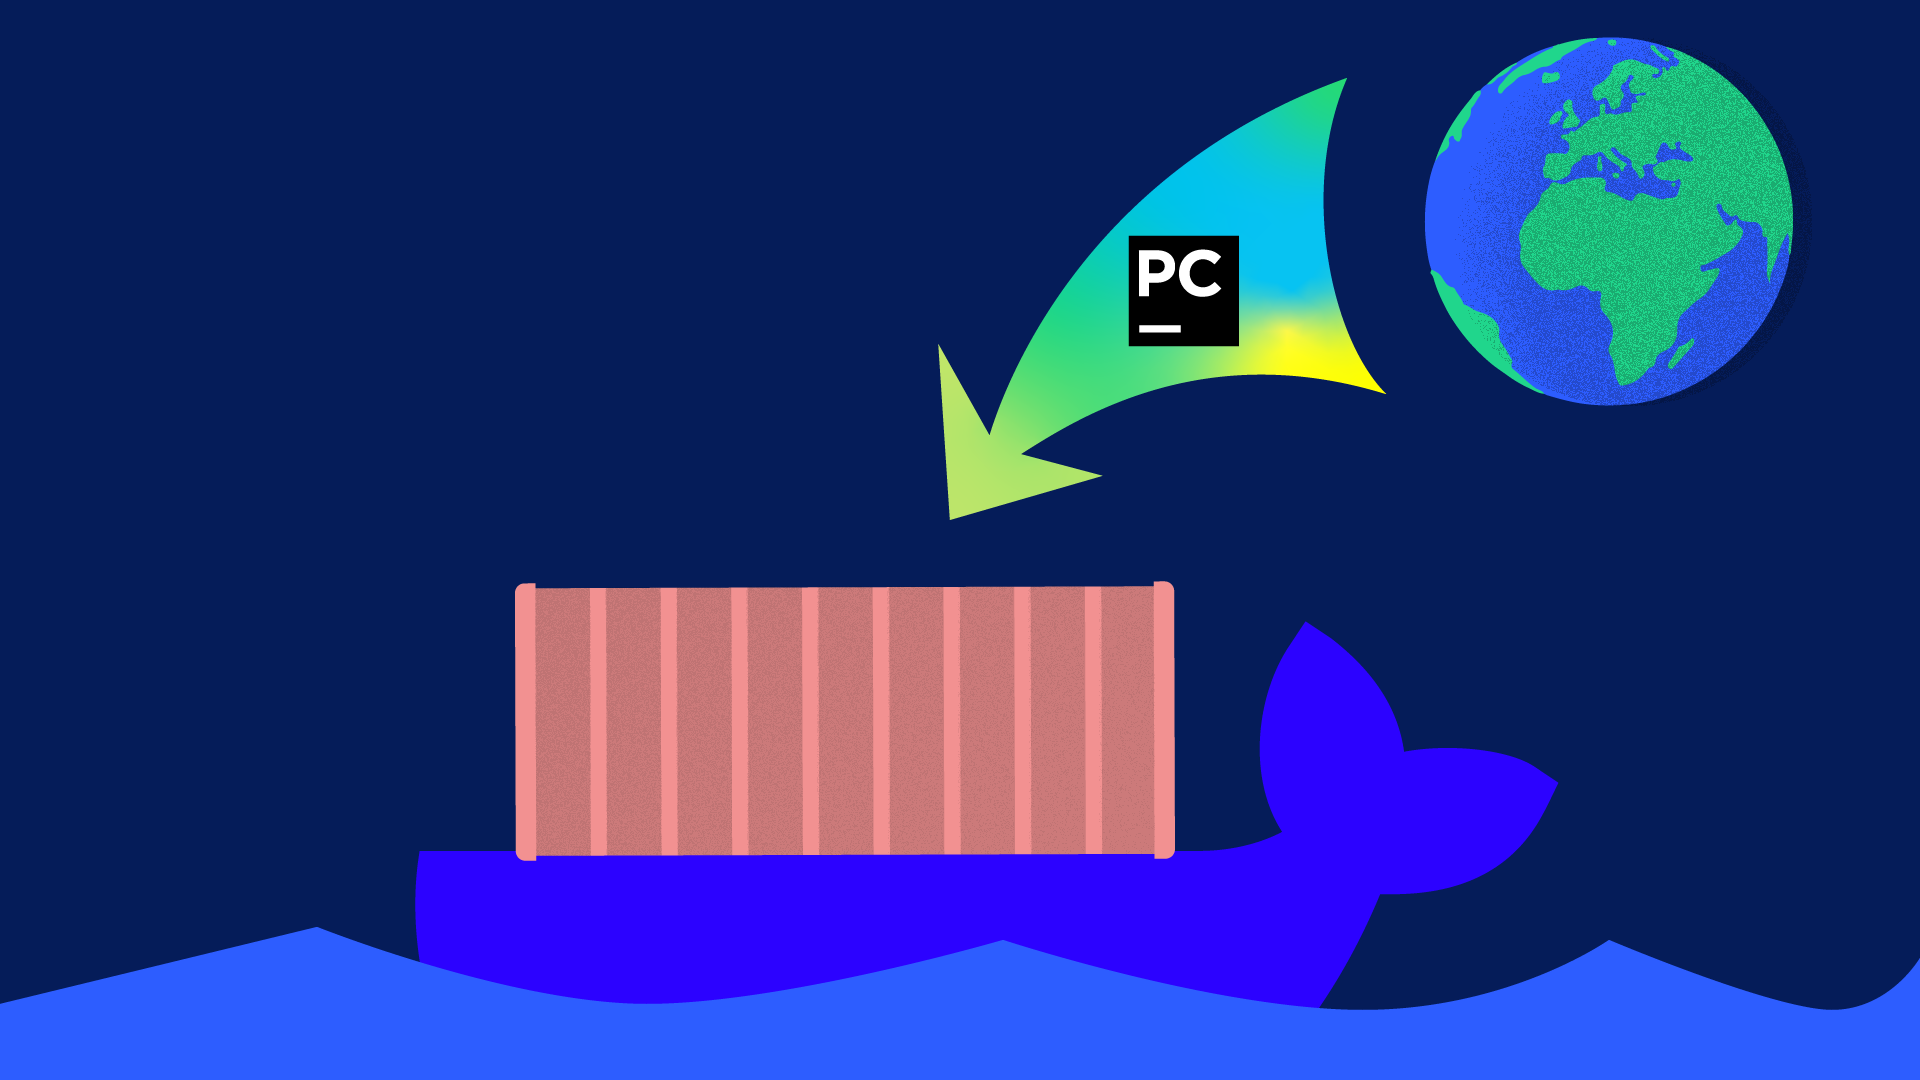 a whale transporting a docker image of a pycharm professional environment